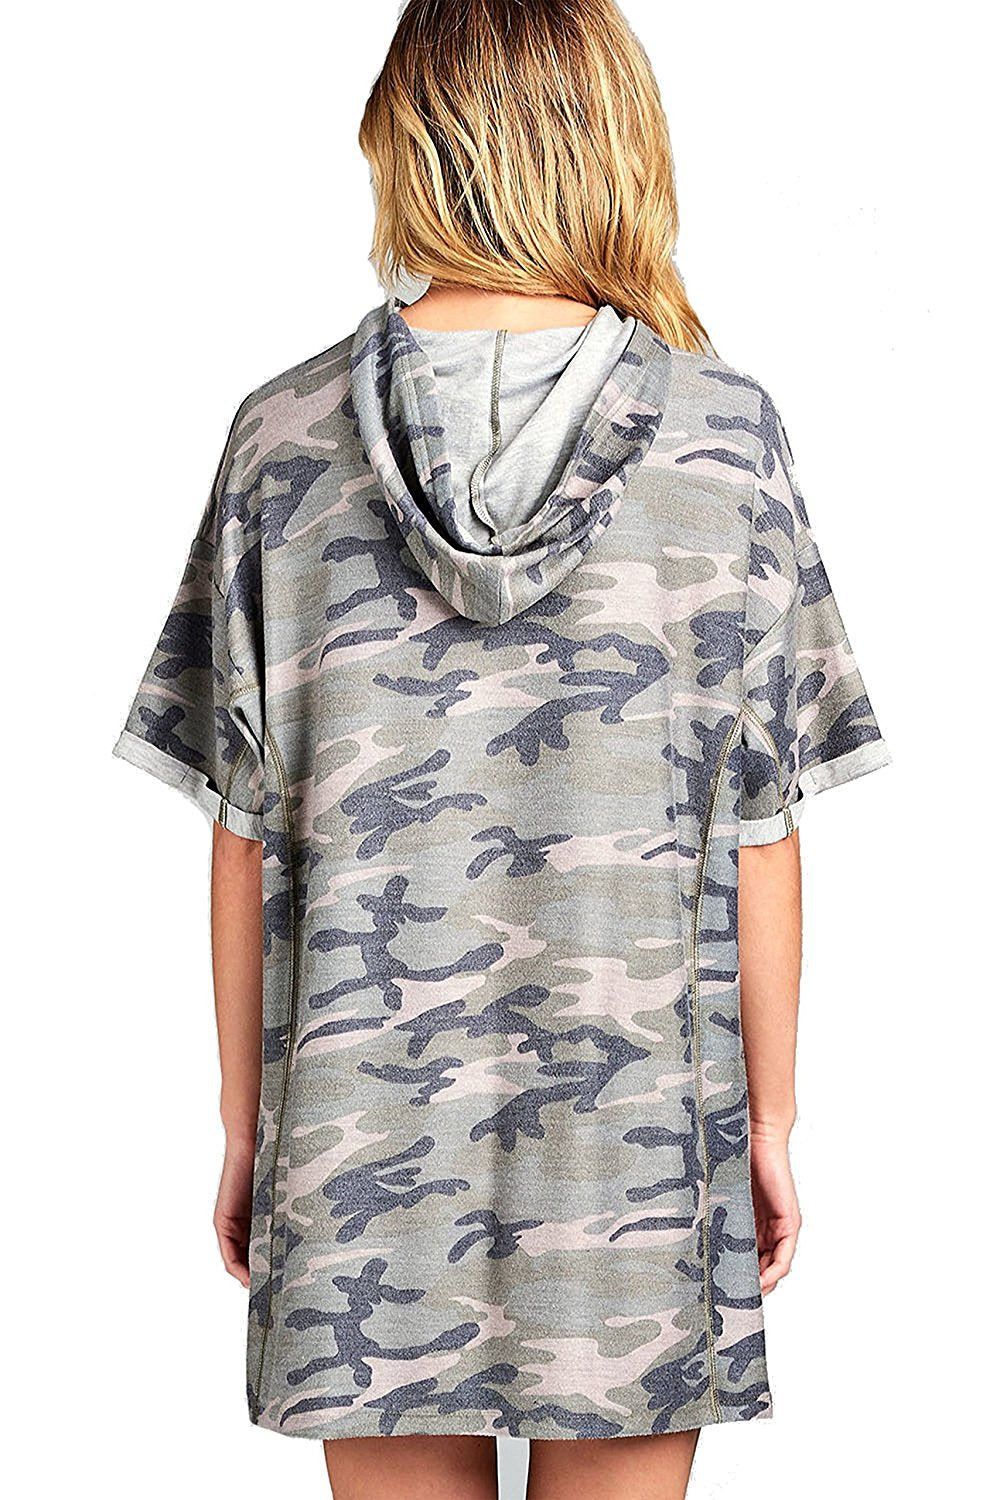 Khanomak Short Sleeve Hooded Oversized Loose Fit Casual All Over Camo Print T-Shirt Dress